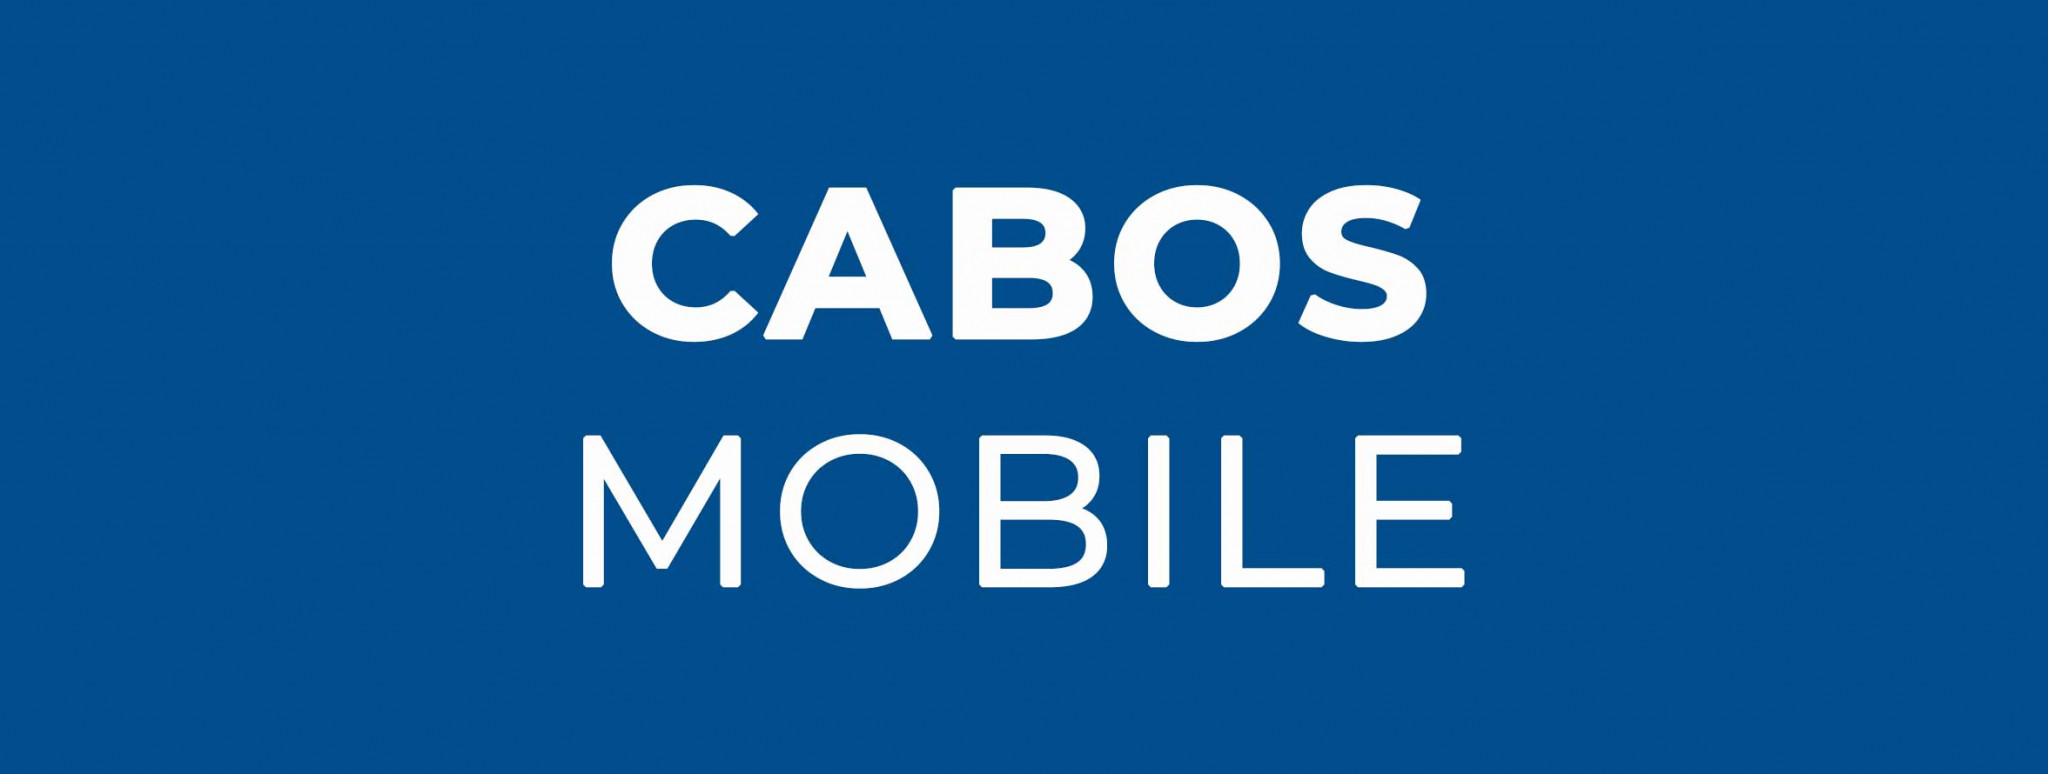 Cabos Mobile